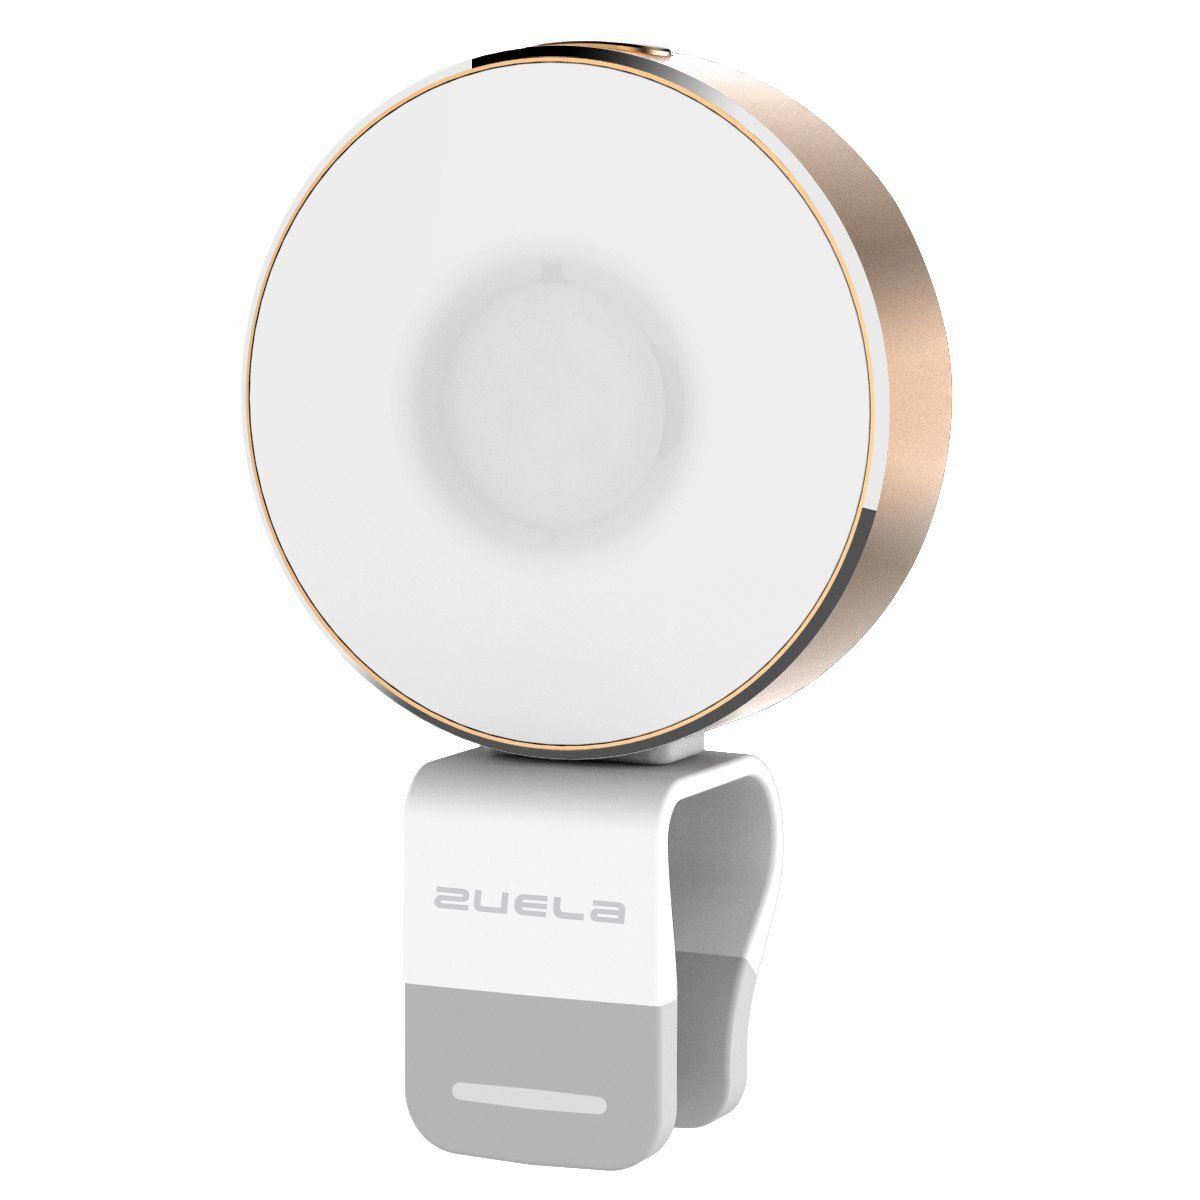 Photozuela Selfie LED Light Deluxe (Gold and Silver)